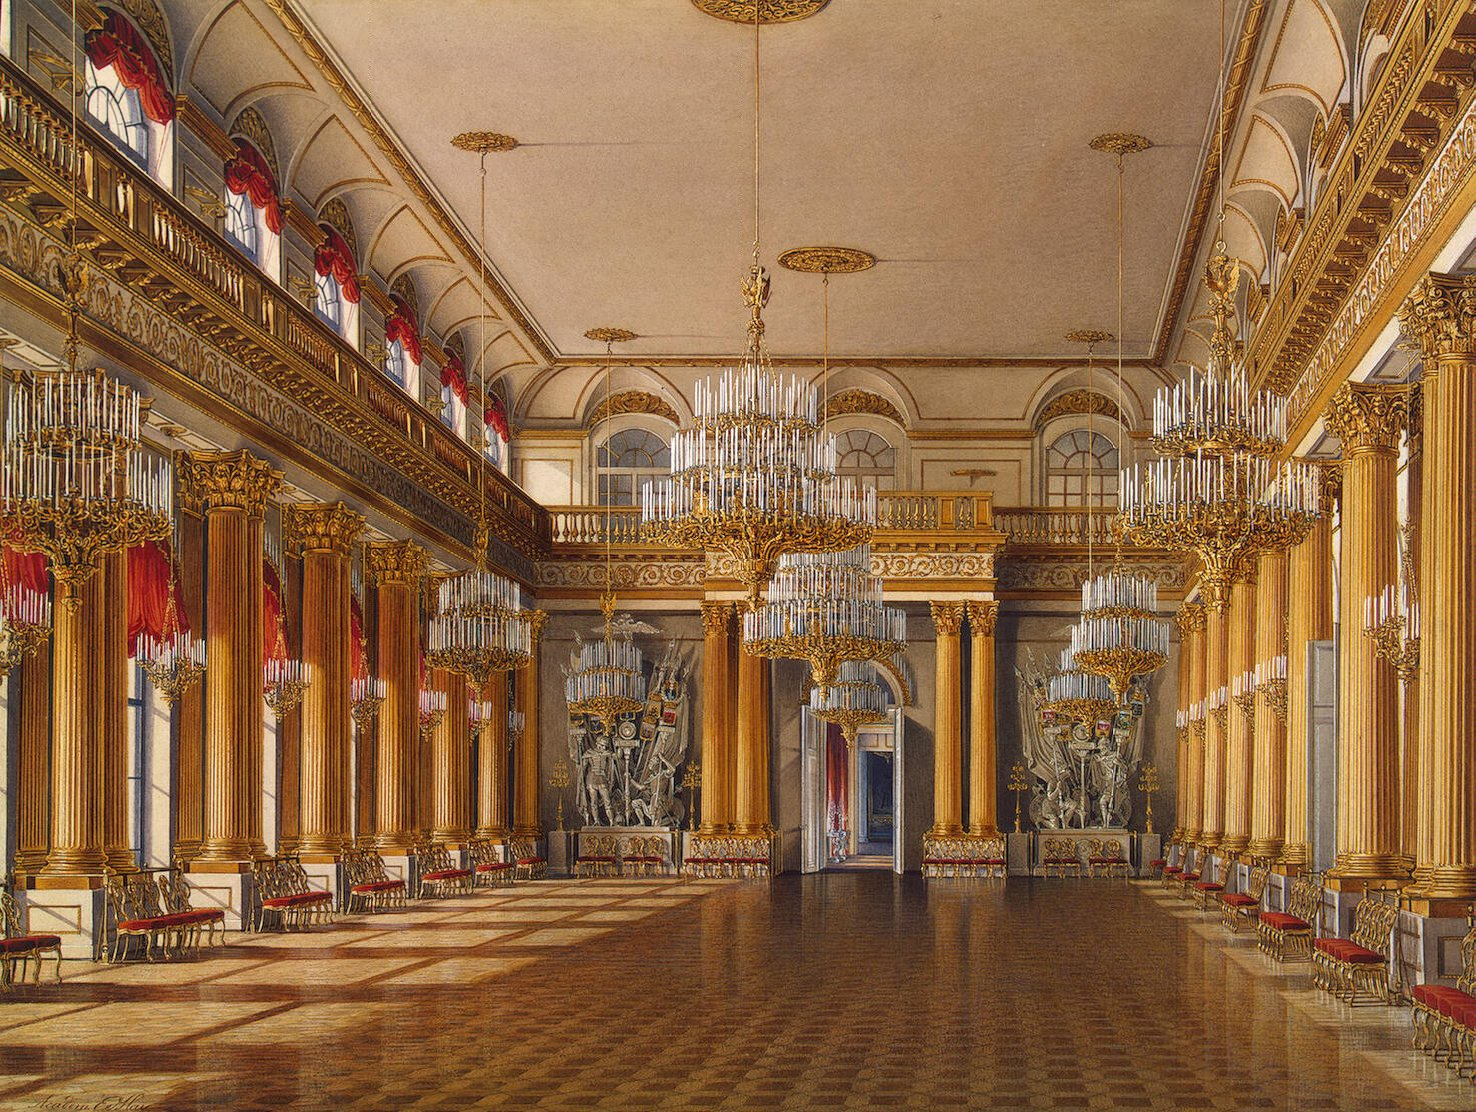 Hau._Interiors_of_the_Winter_Palace._The_Armorial_Hall